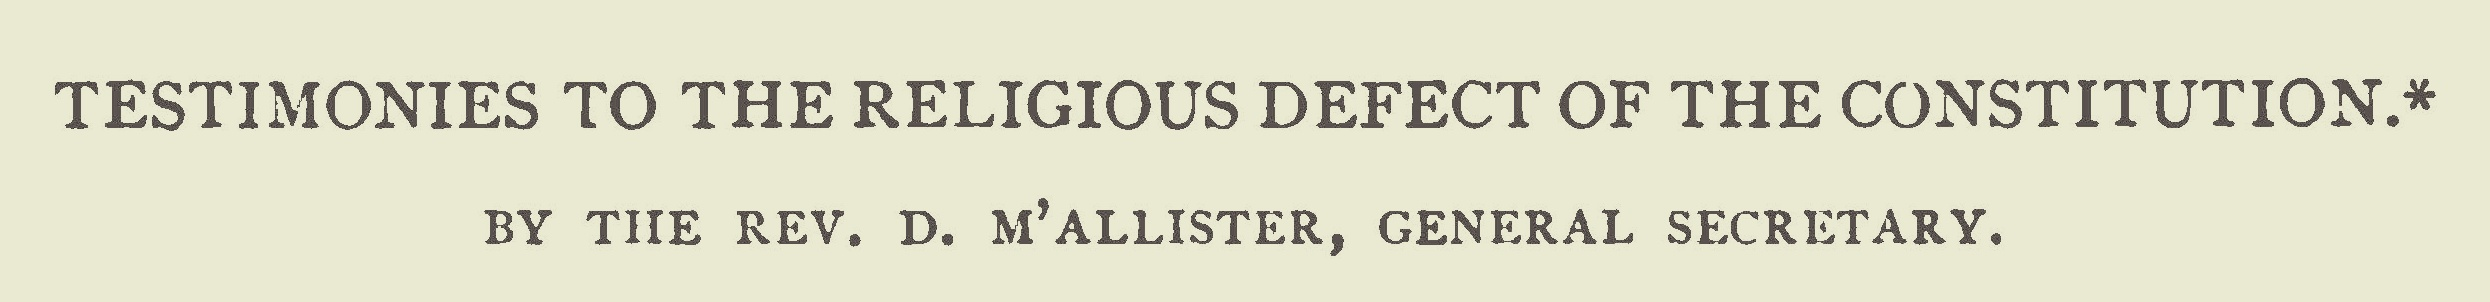 McAllister, David, Testimonies to the Religious Defect of the Constitution Title Page.jpg